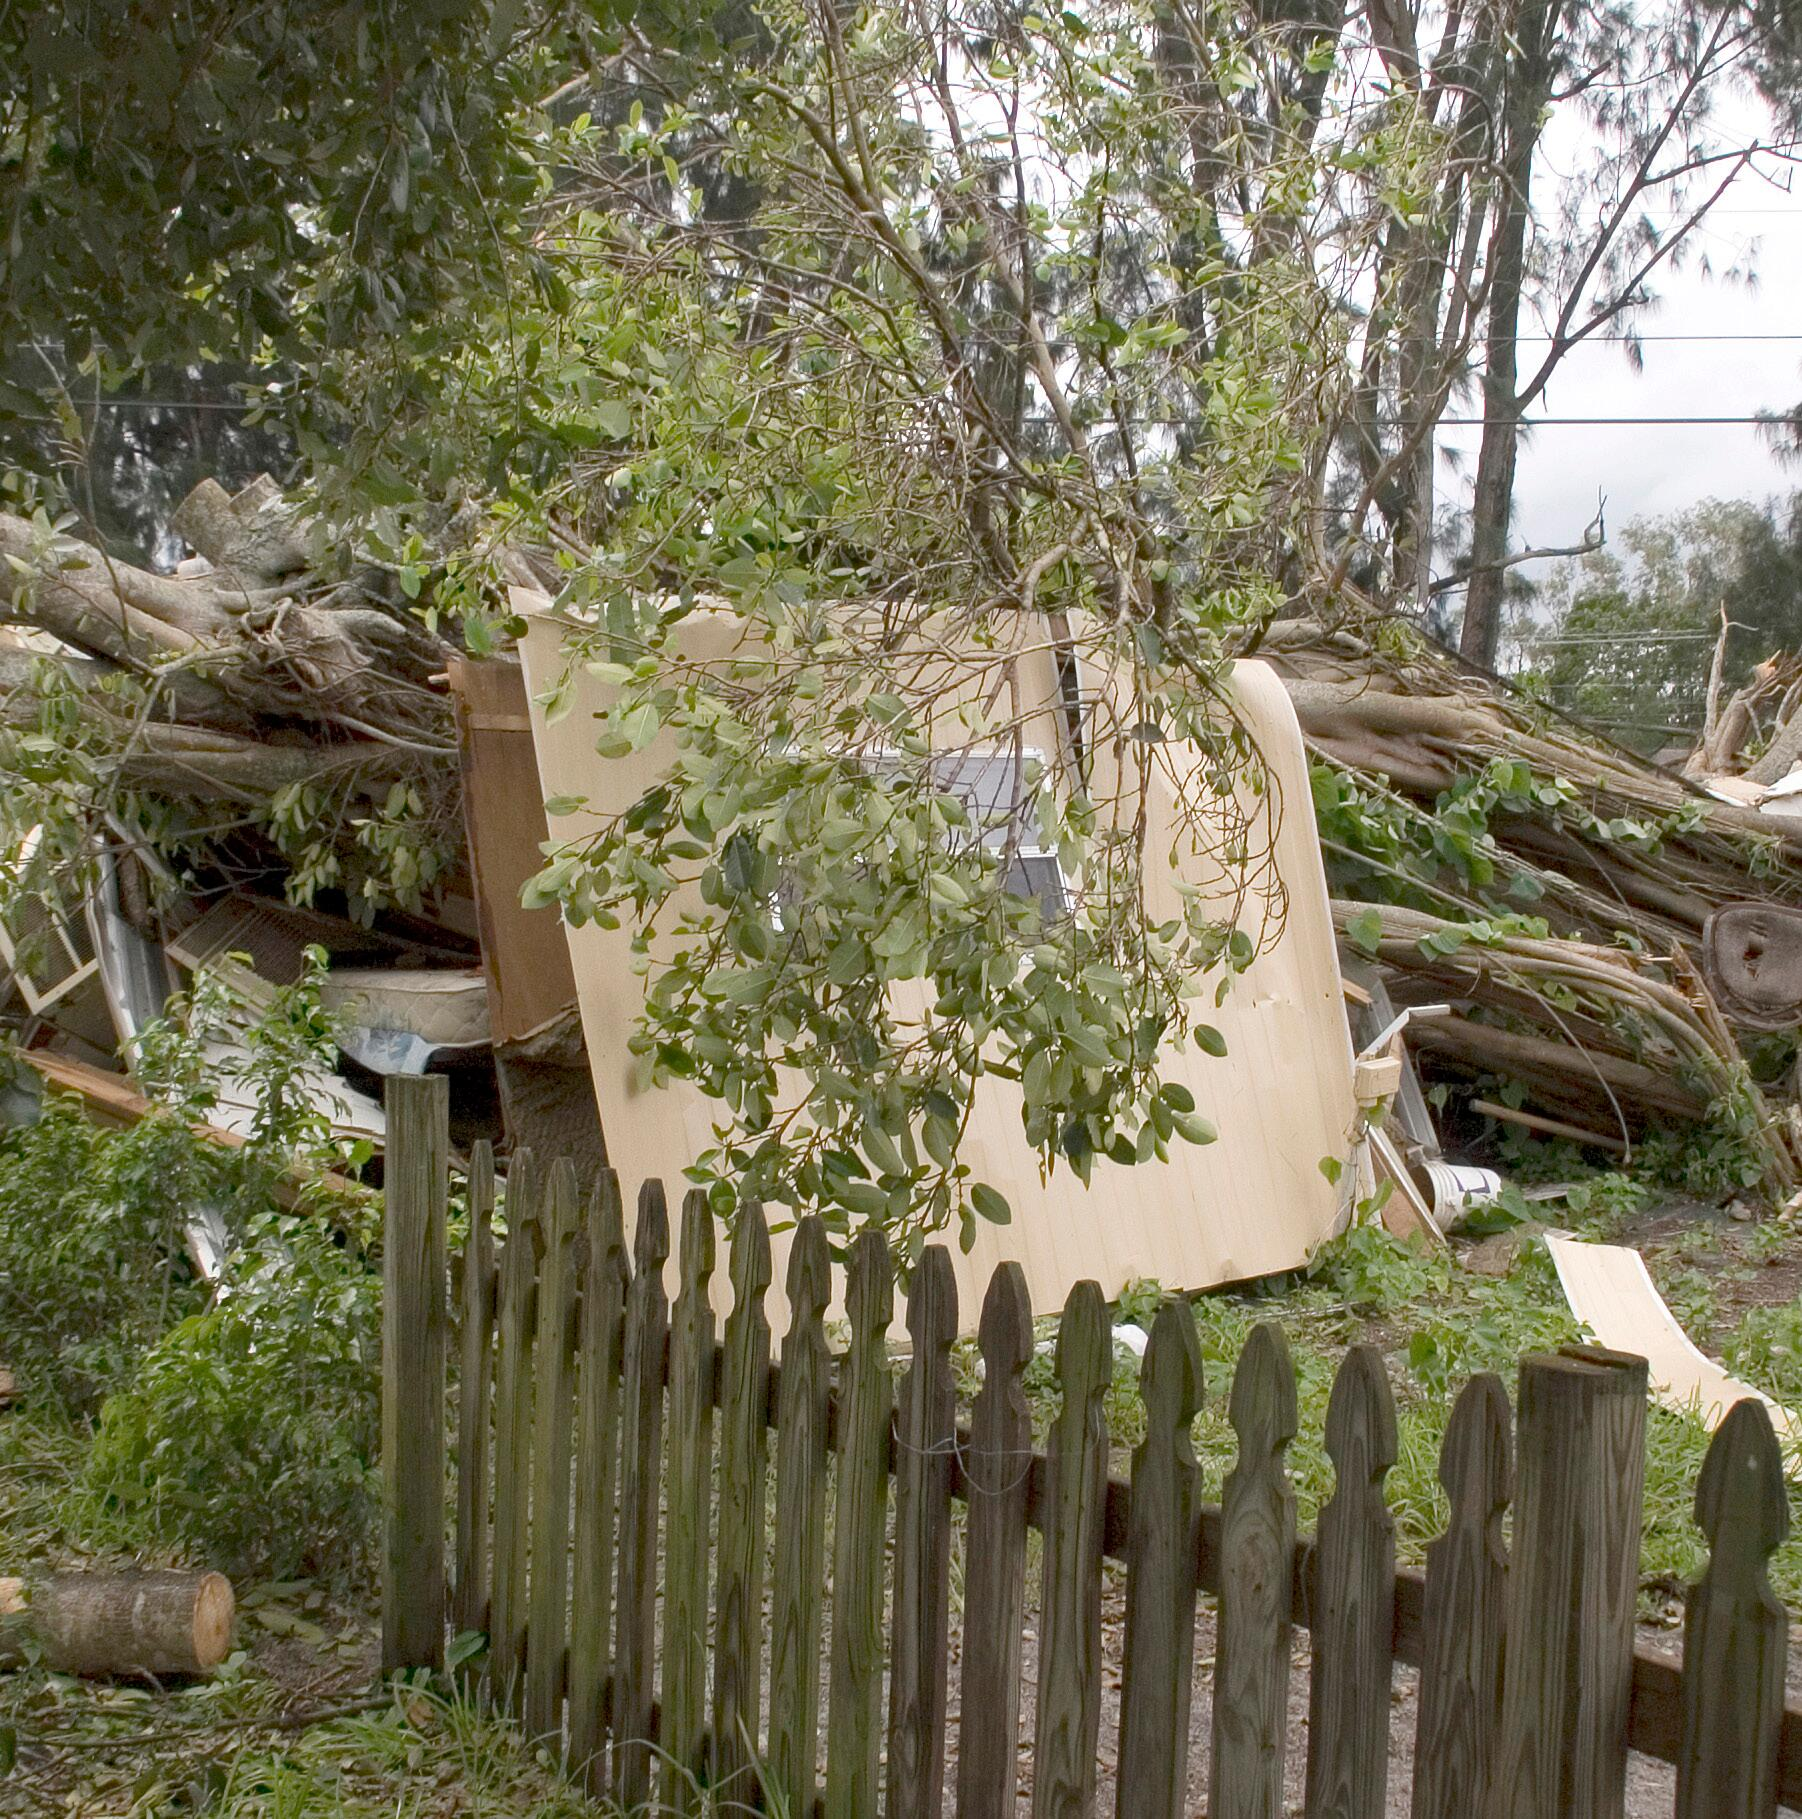 Damaged fence with debris and downed trees as a result of hurricane wind from Katrina.